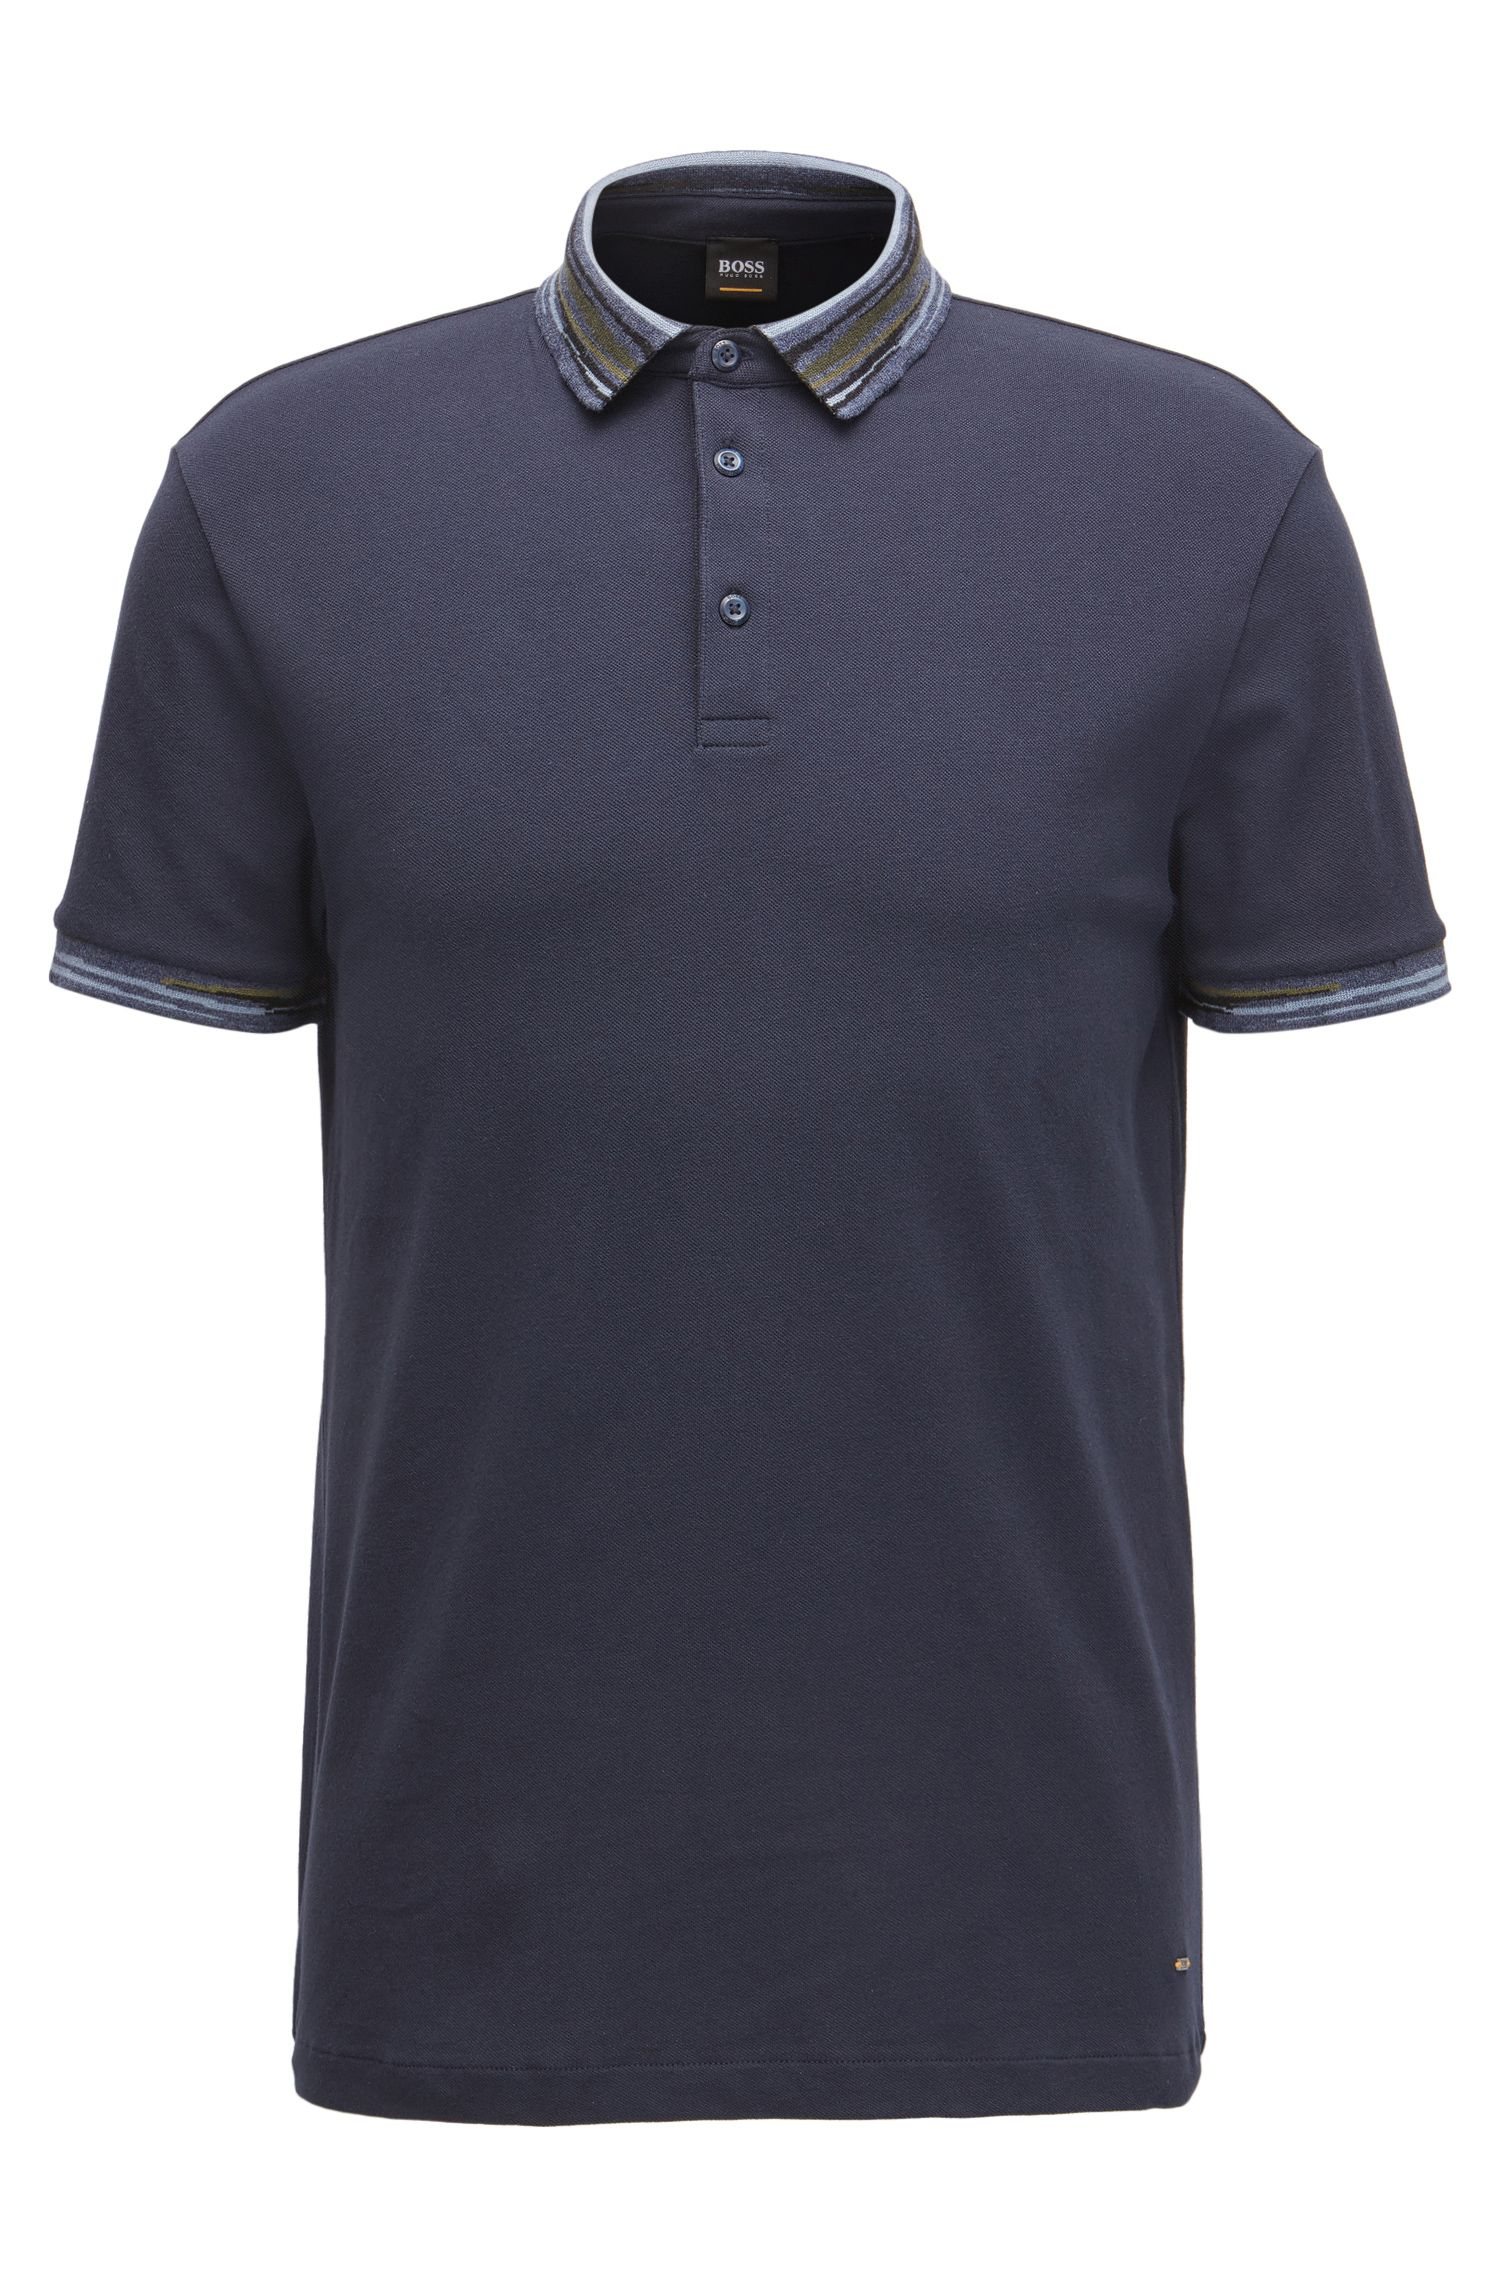 Polo Regular Fit en piqué de coton stretch, avec rayures abstraites